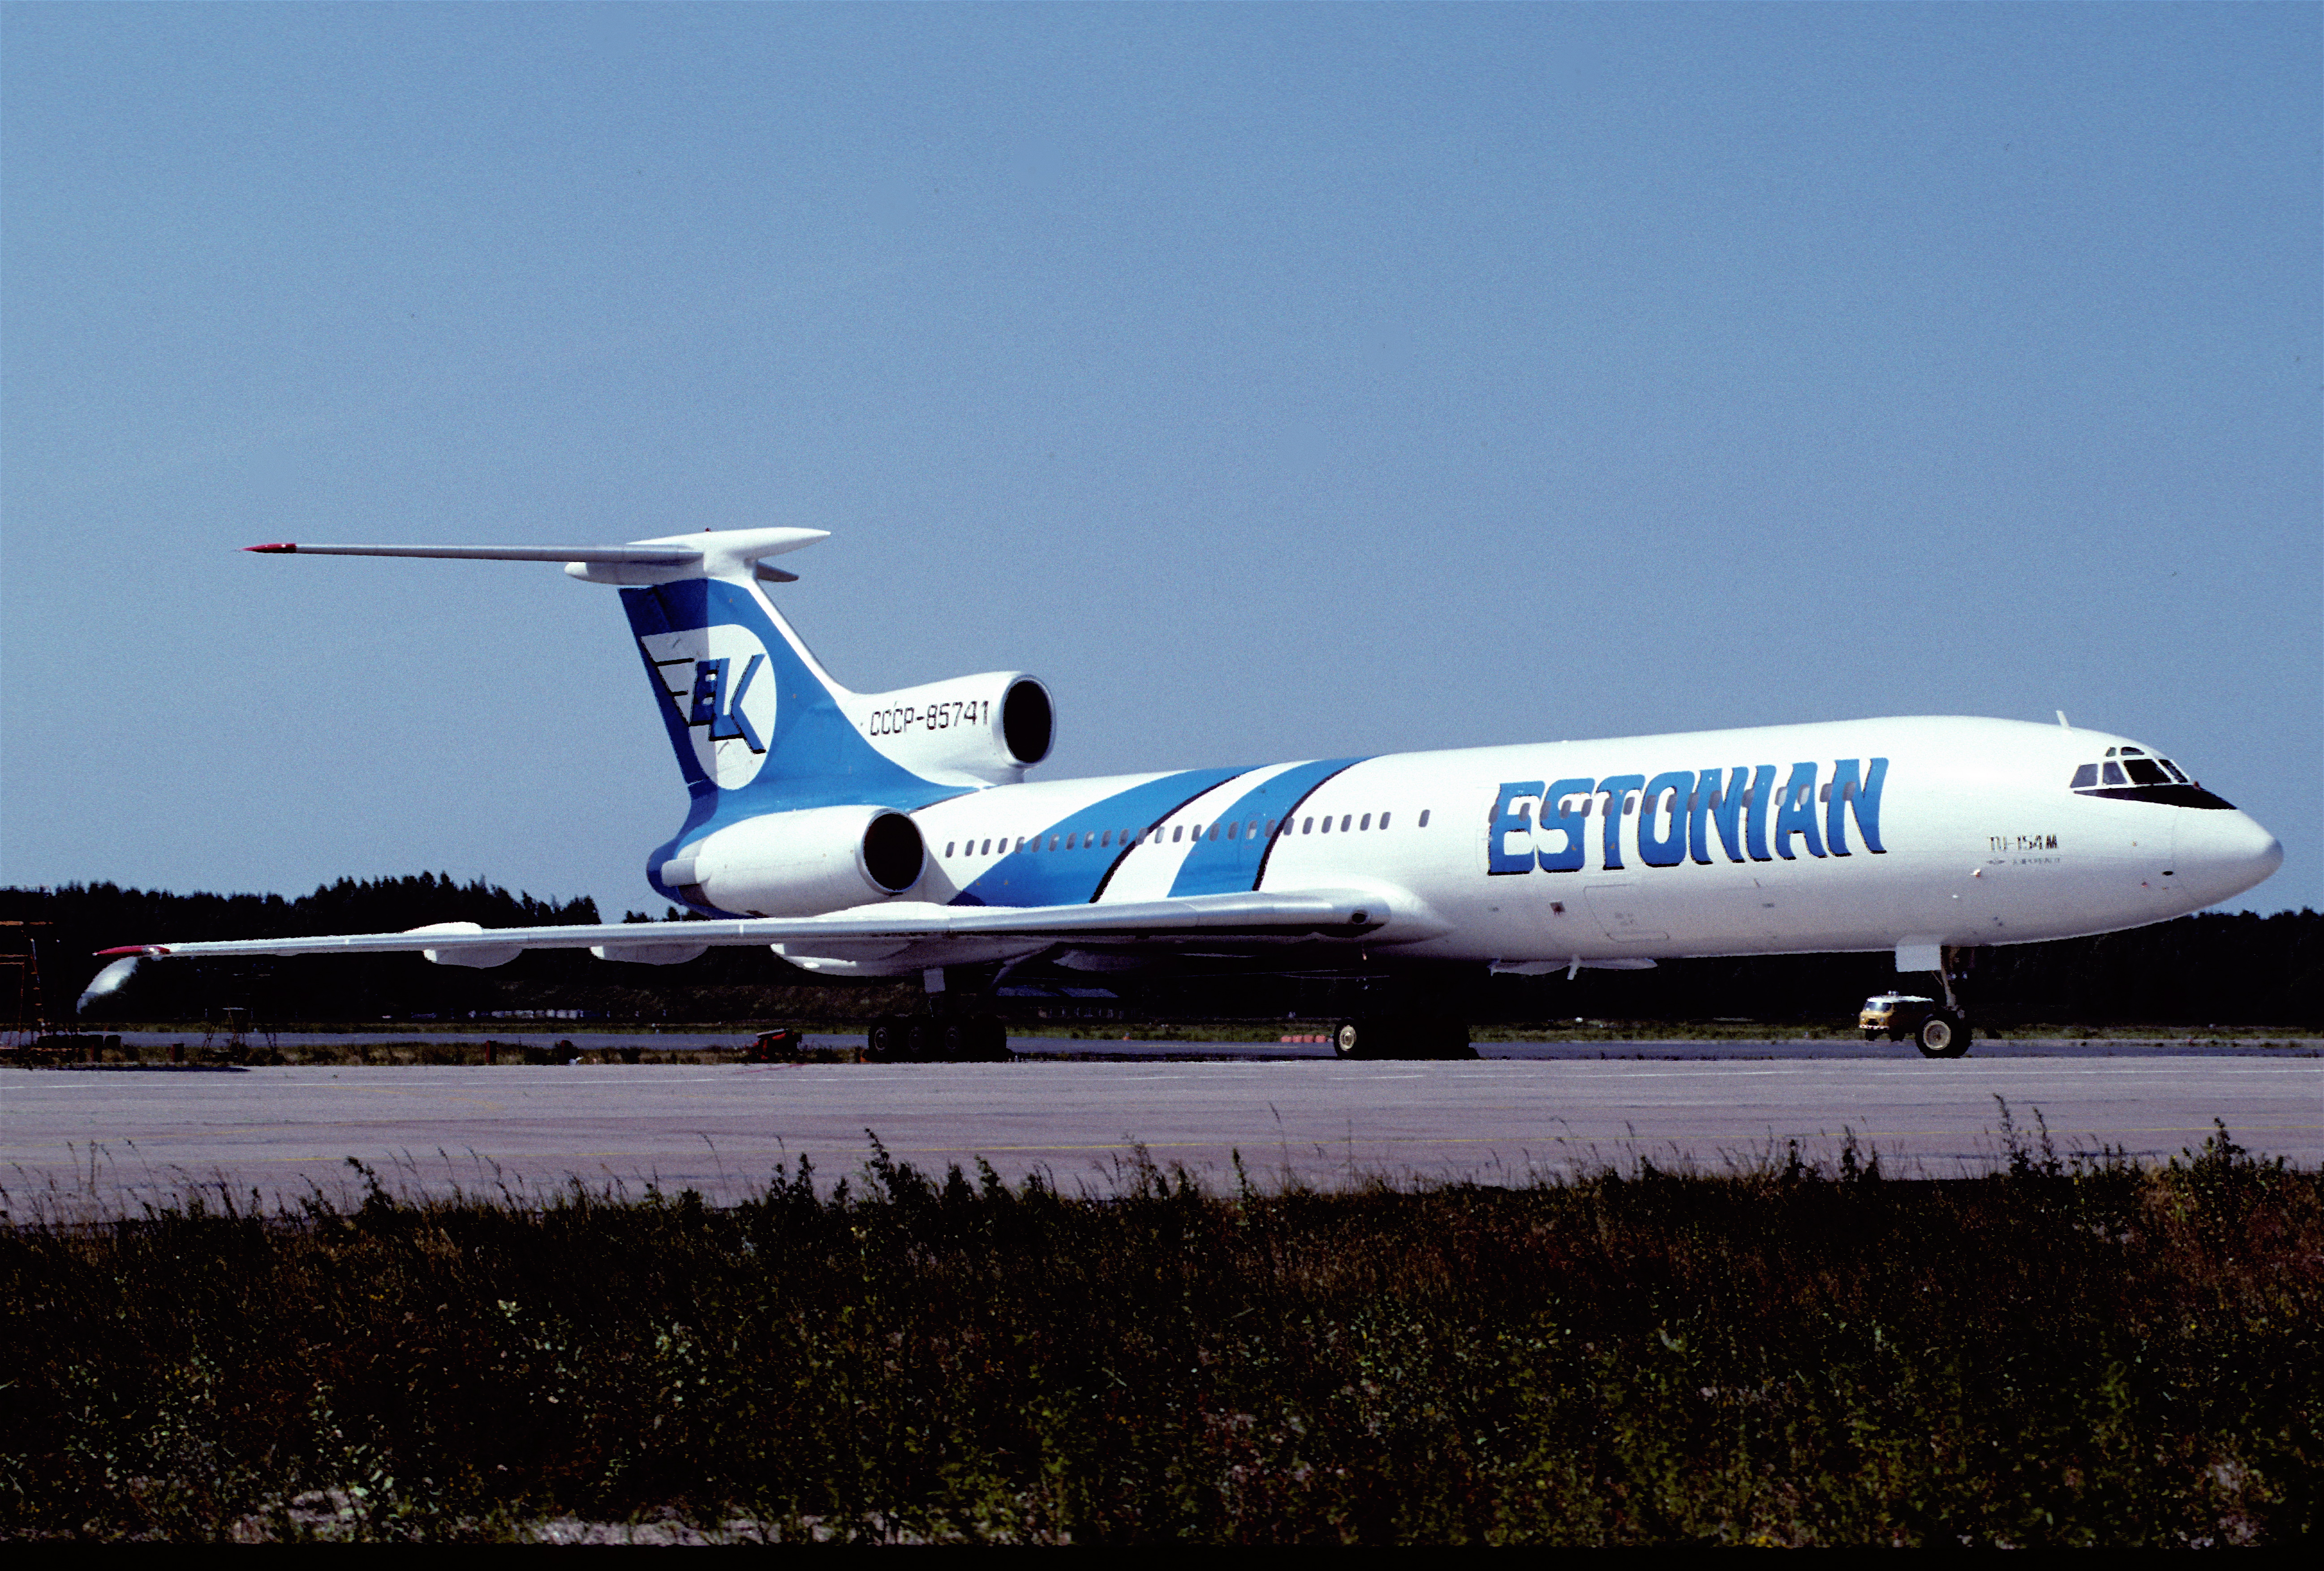 File:Estonian Aviation Company - ELK